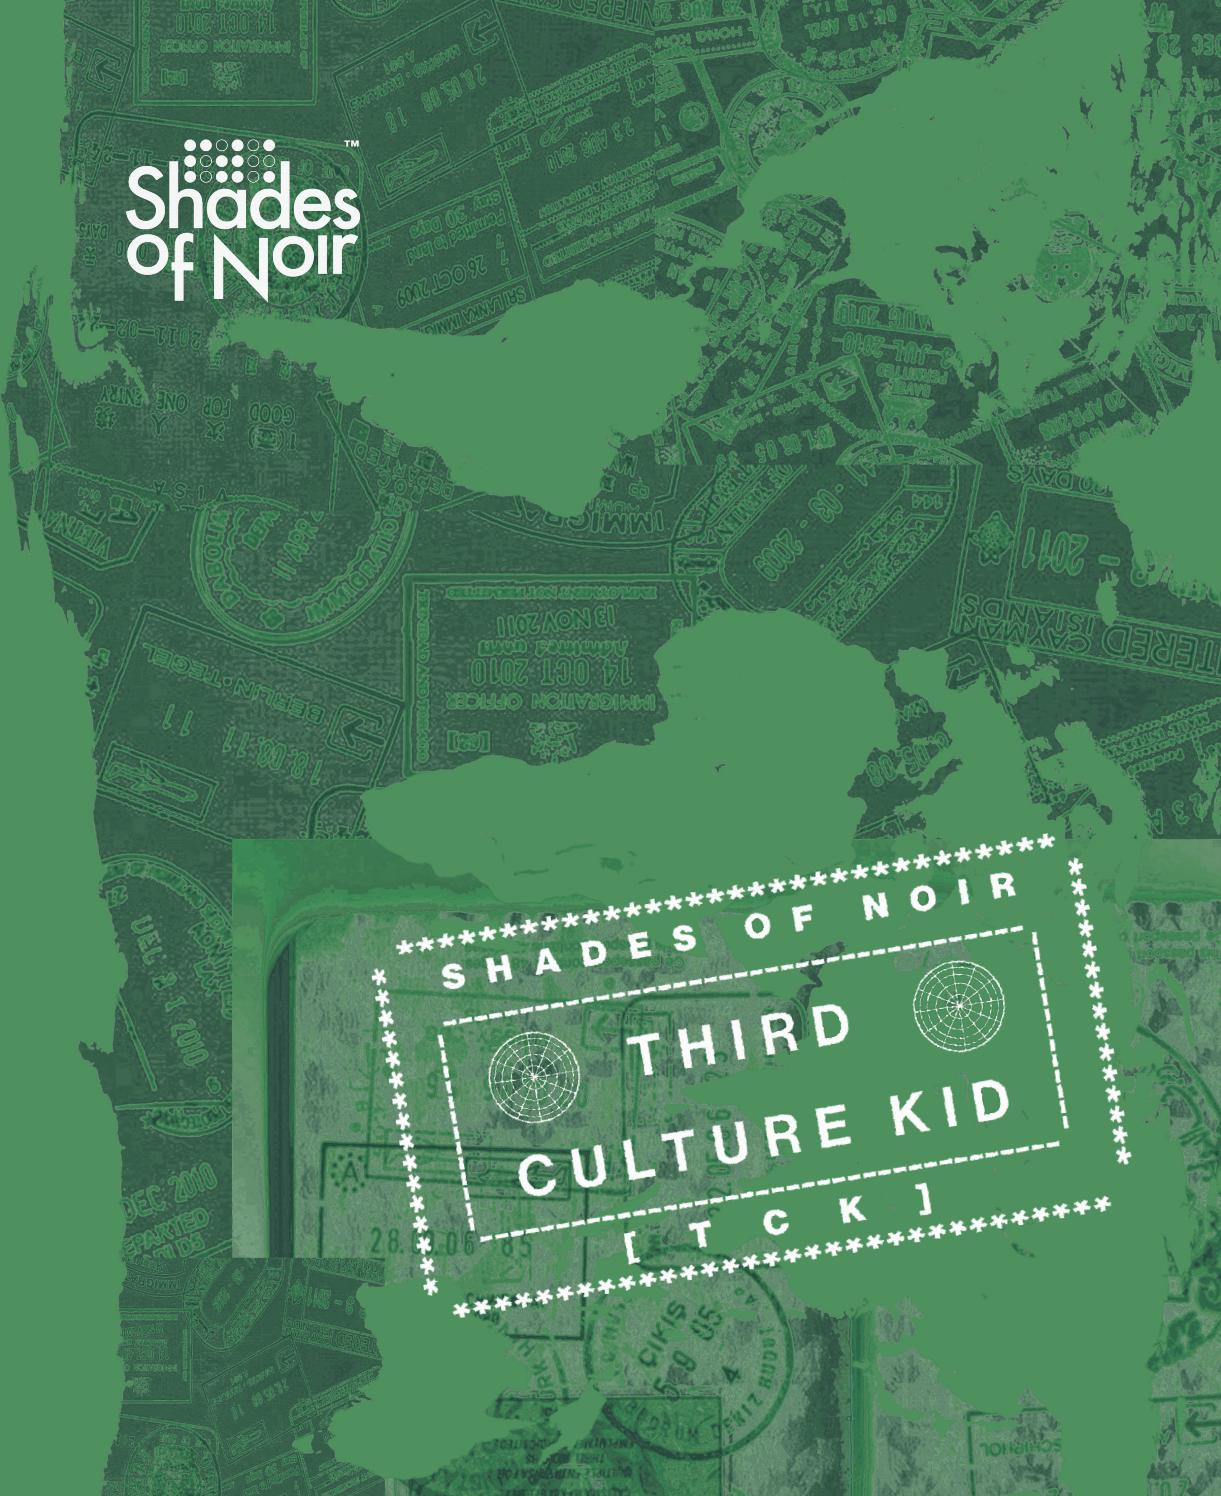 Third Culture Kids By Shades Of Noir Issuu